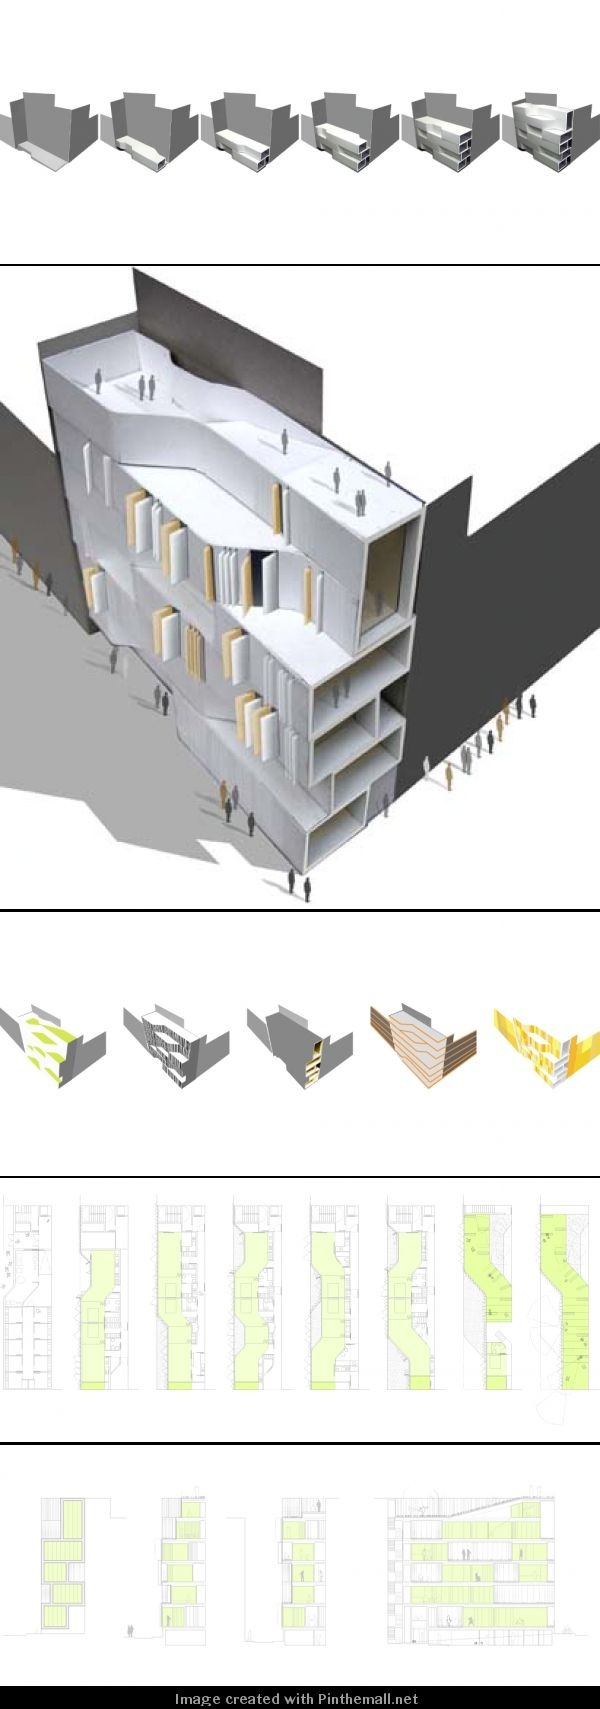 Ideas For Architecture Projects best 10+ social housing architecture ideas on pinterest | social